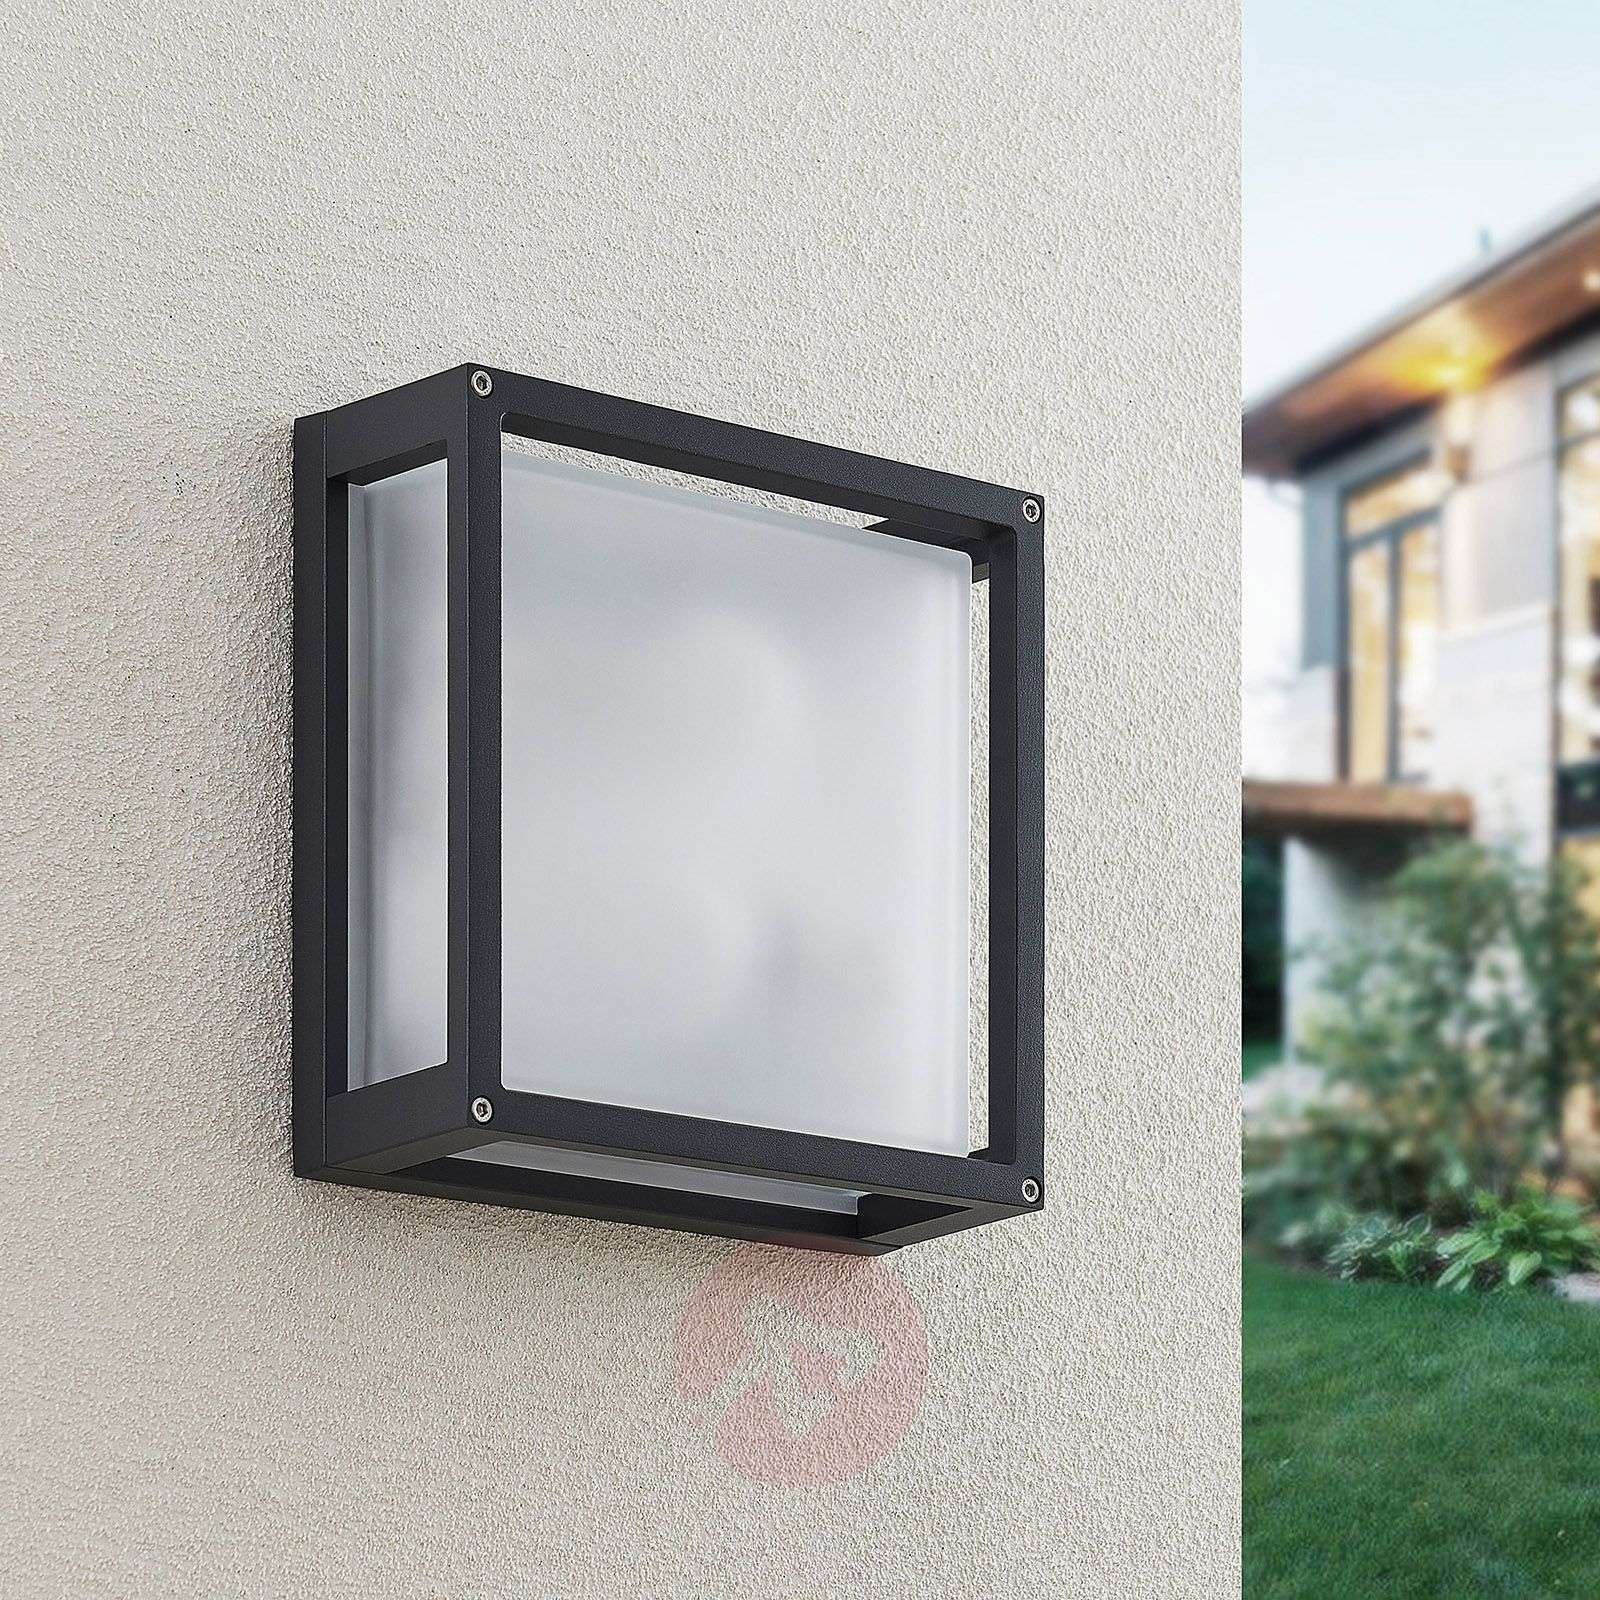 Aurelien square outdoor wall lamp-9969047-01